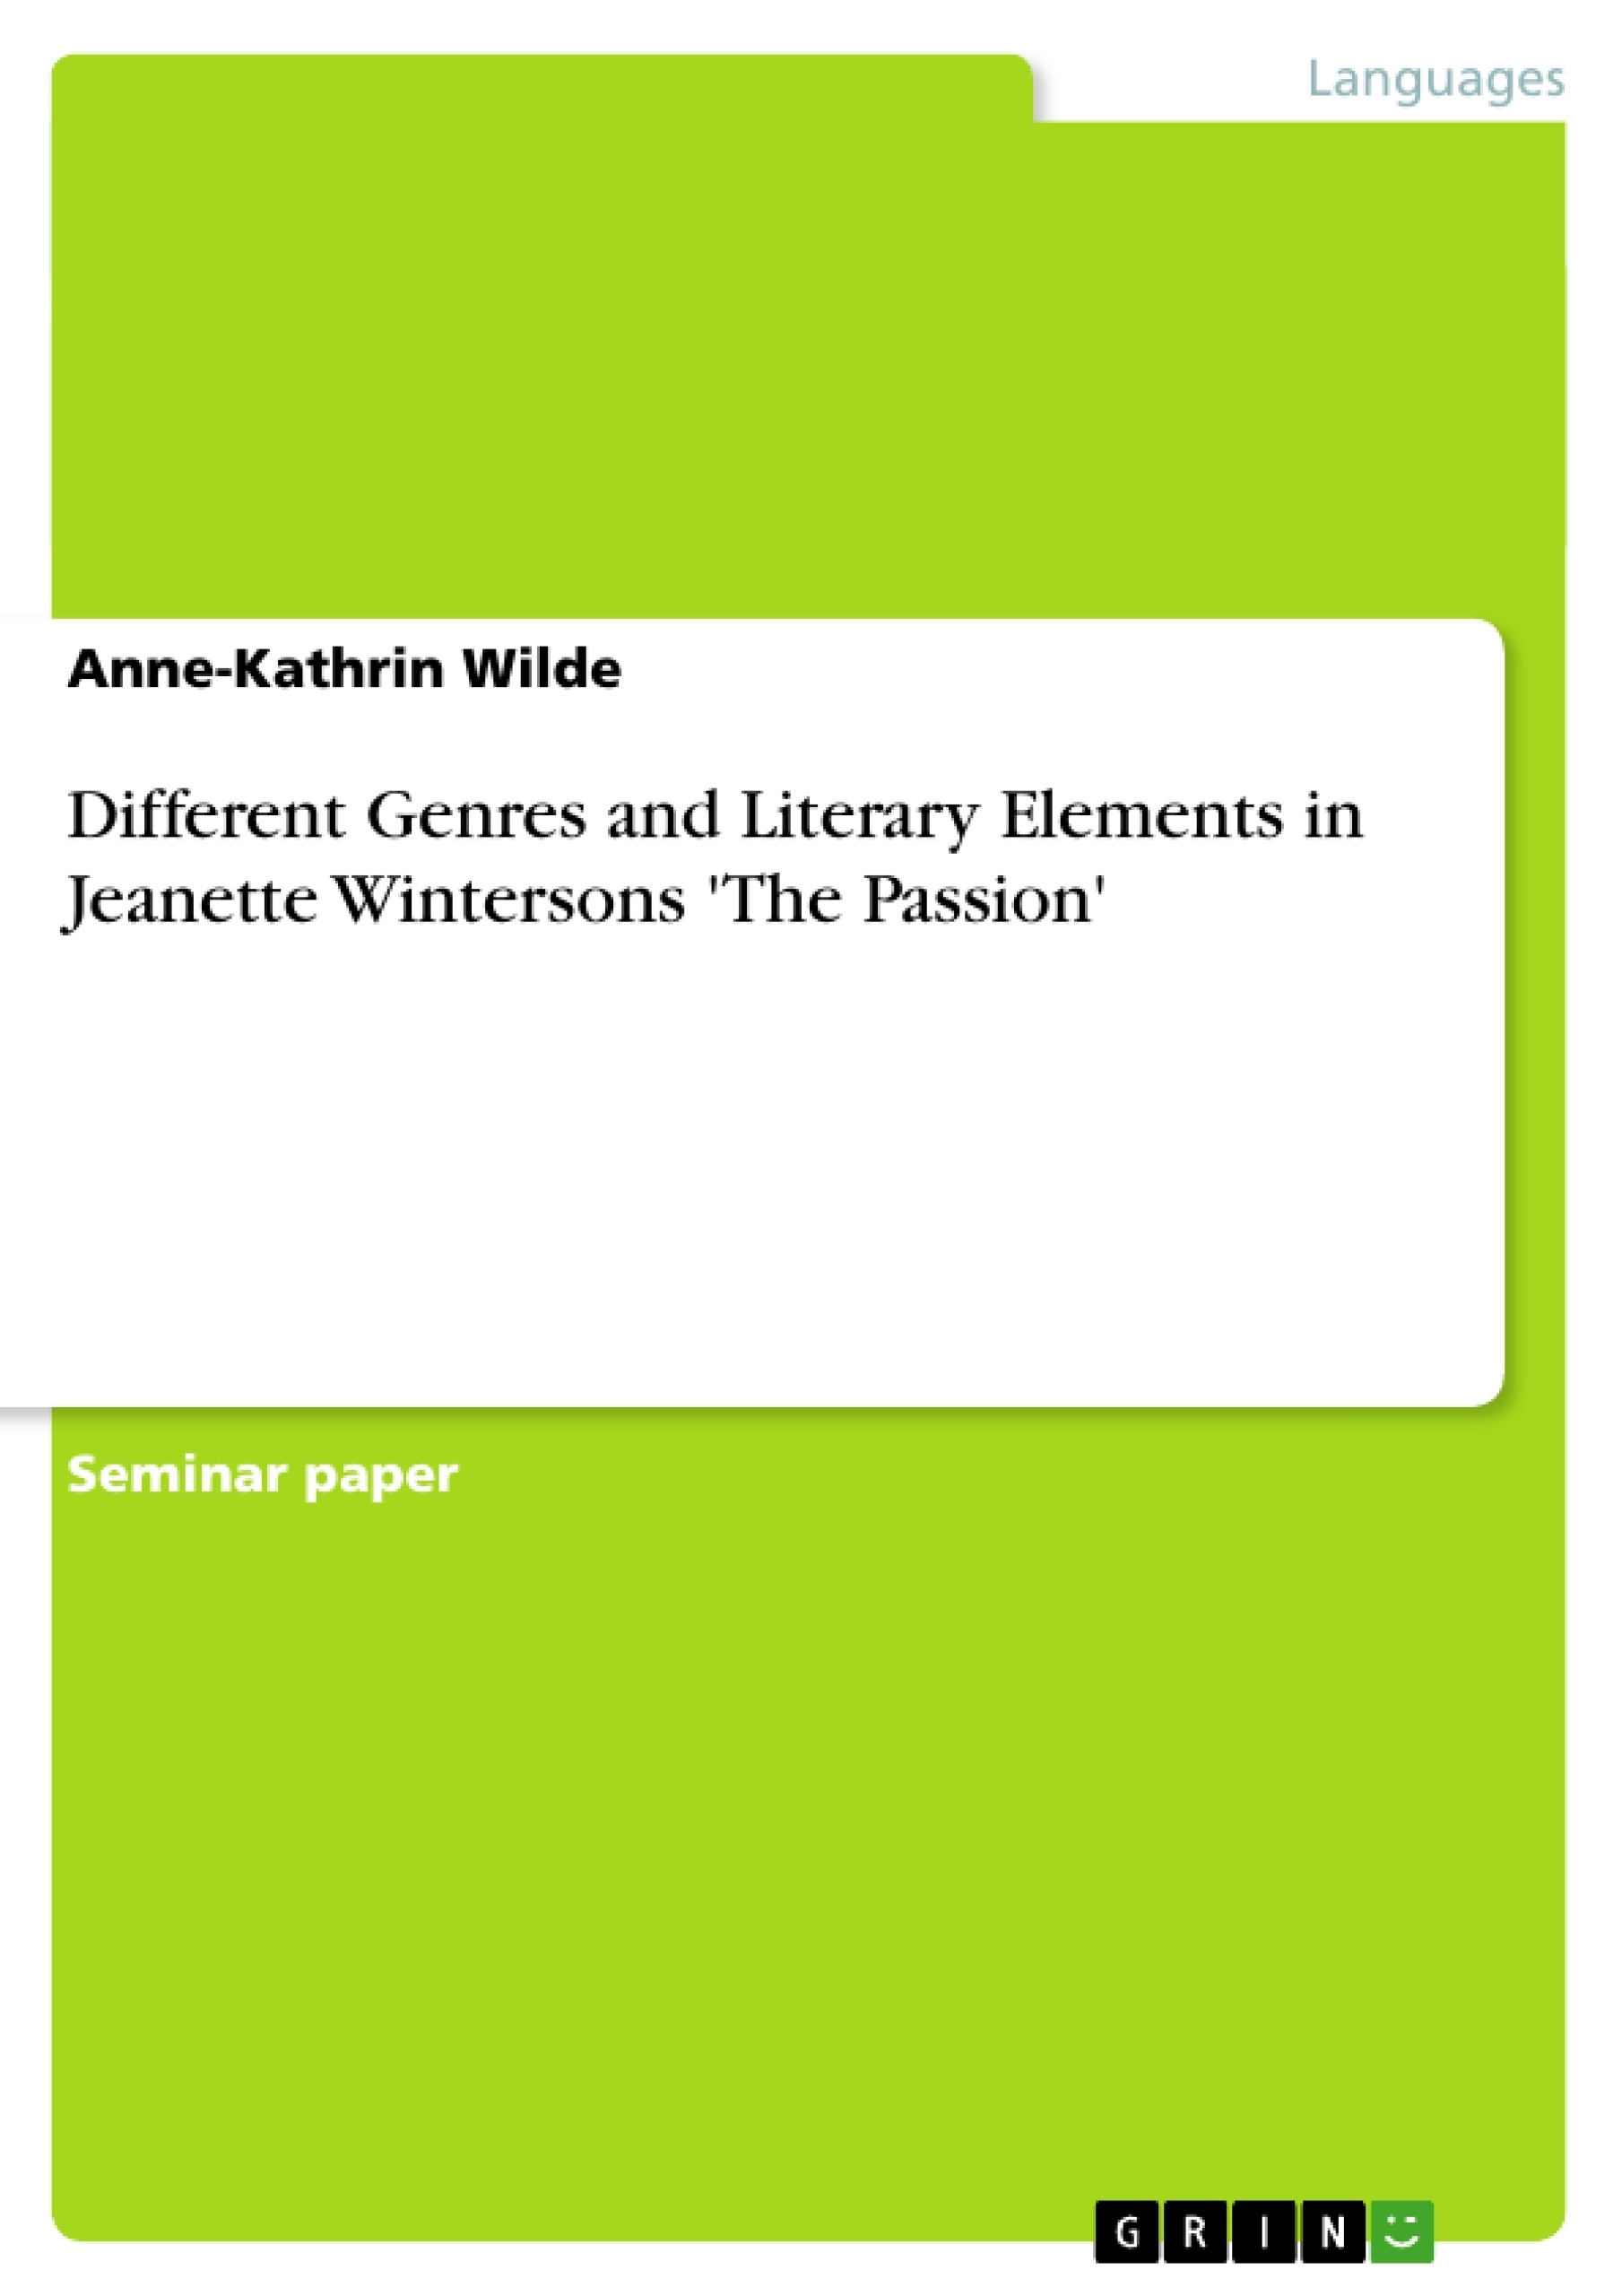 elements of essay in literature essay literature examples of a  different genres and literary elements in jeanette wintersons the different genres and literary elements in jeanette